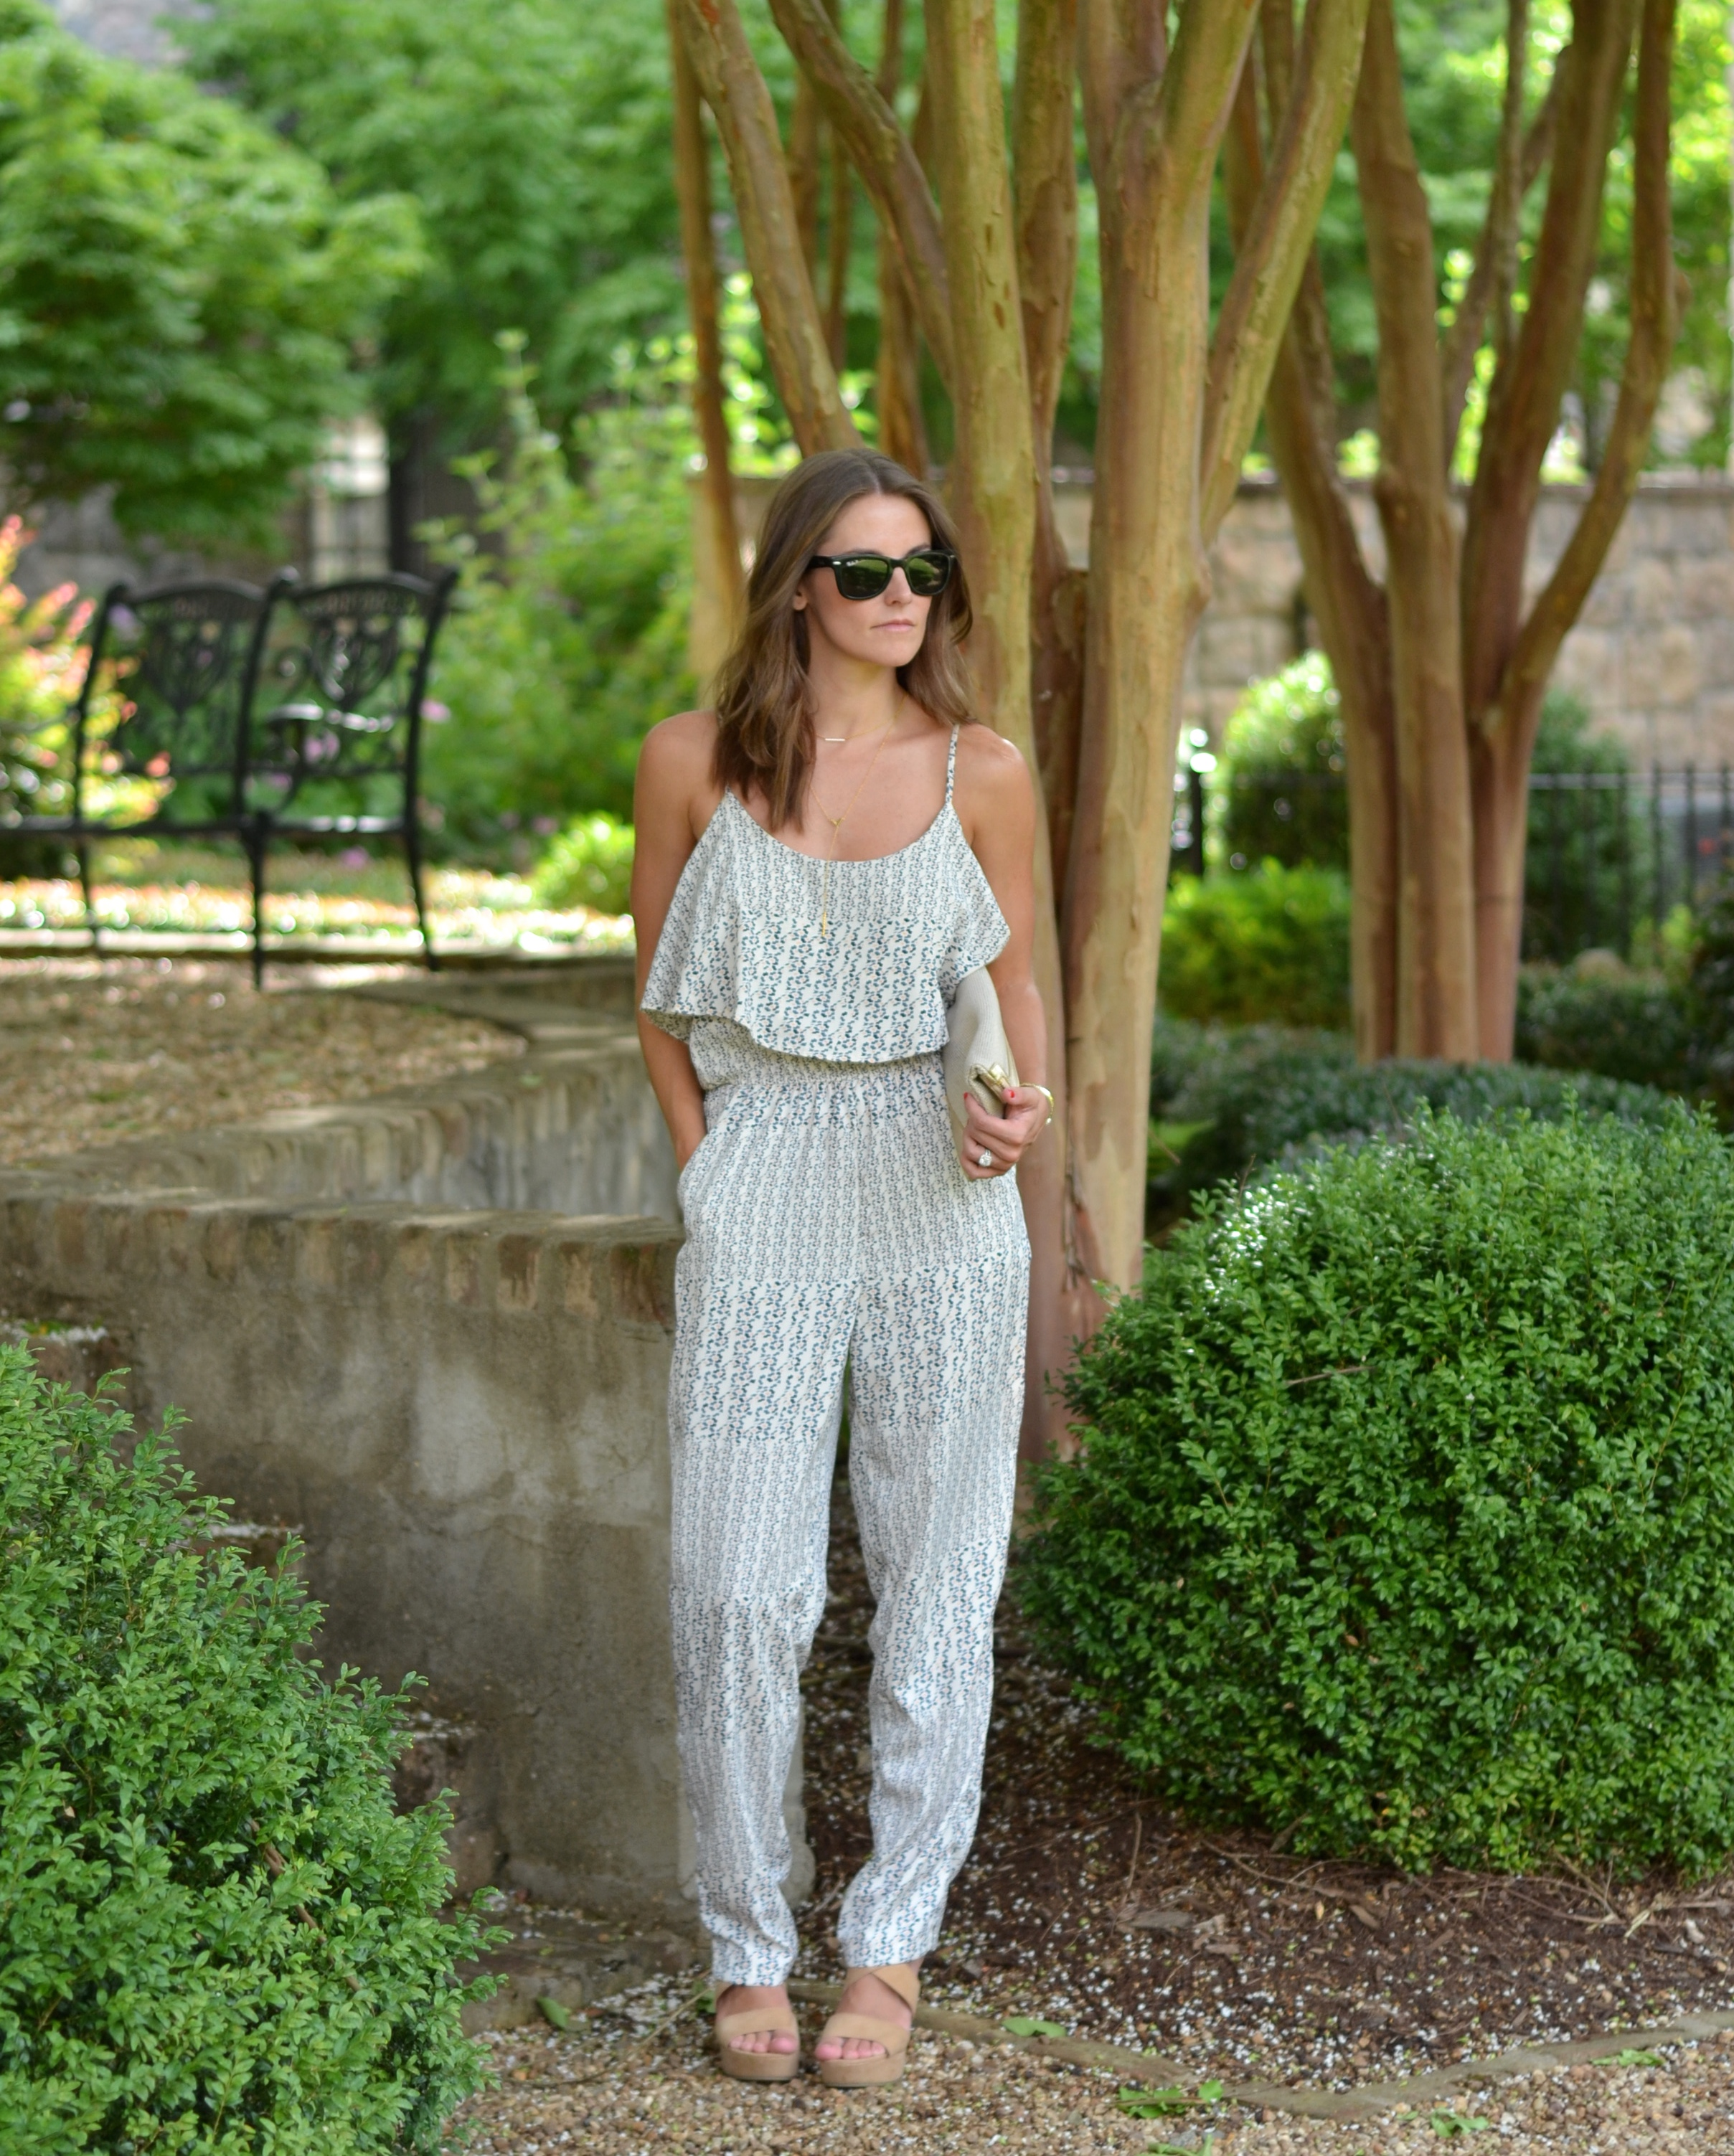 Fashion Blogger Ruffled Romper Summer Jumpsuit Gorjana Layered Necklaces